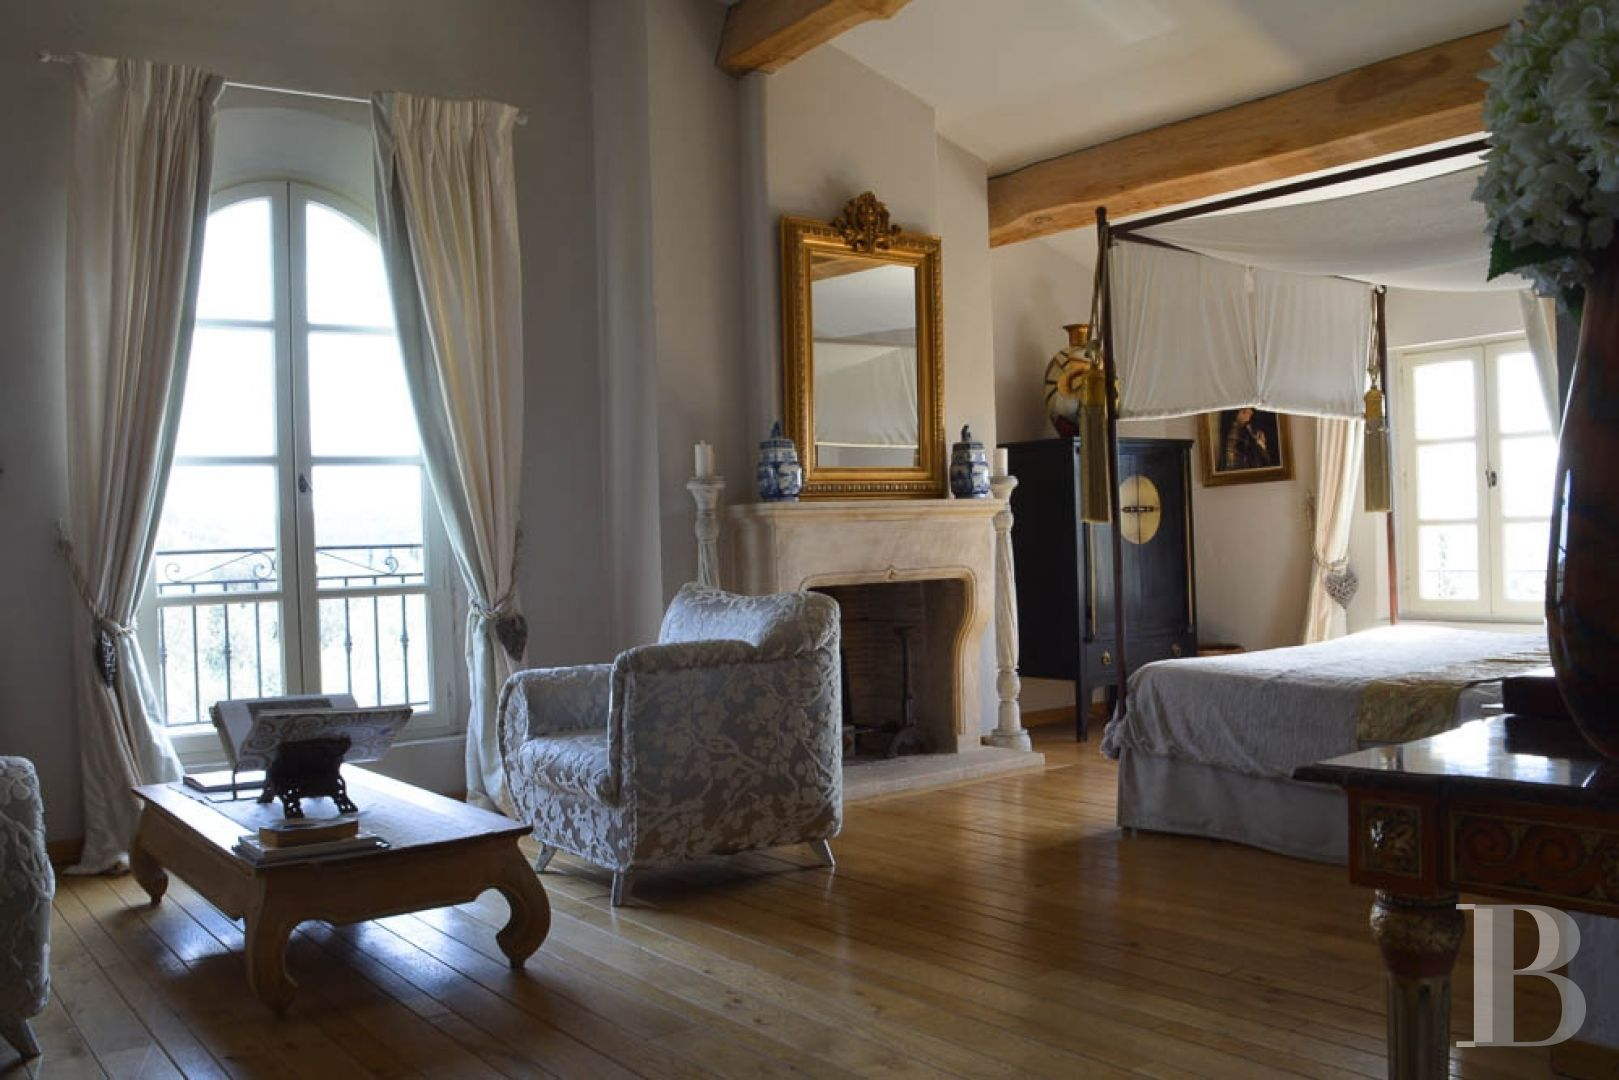 property for sale France provence cote dazur residences traditional - 7 zoom